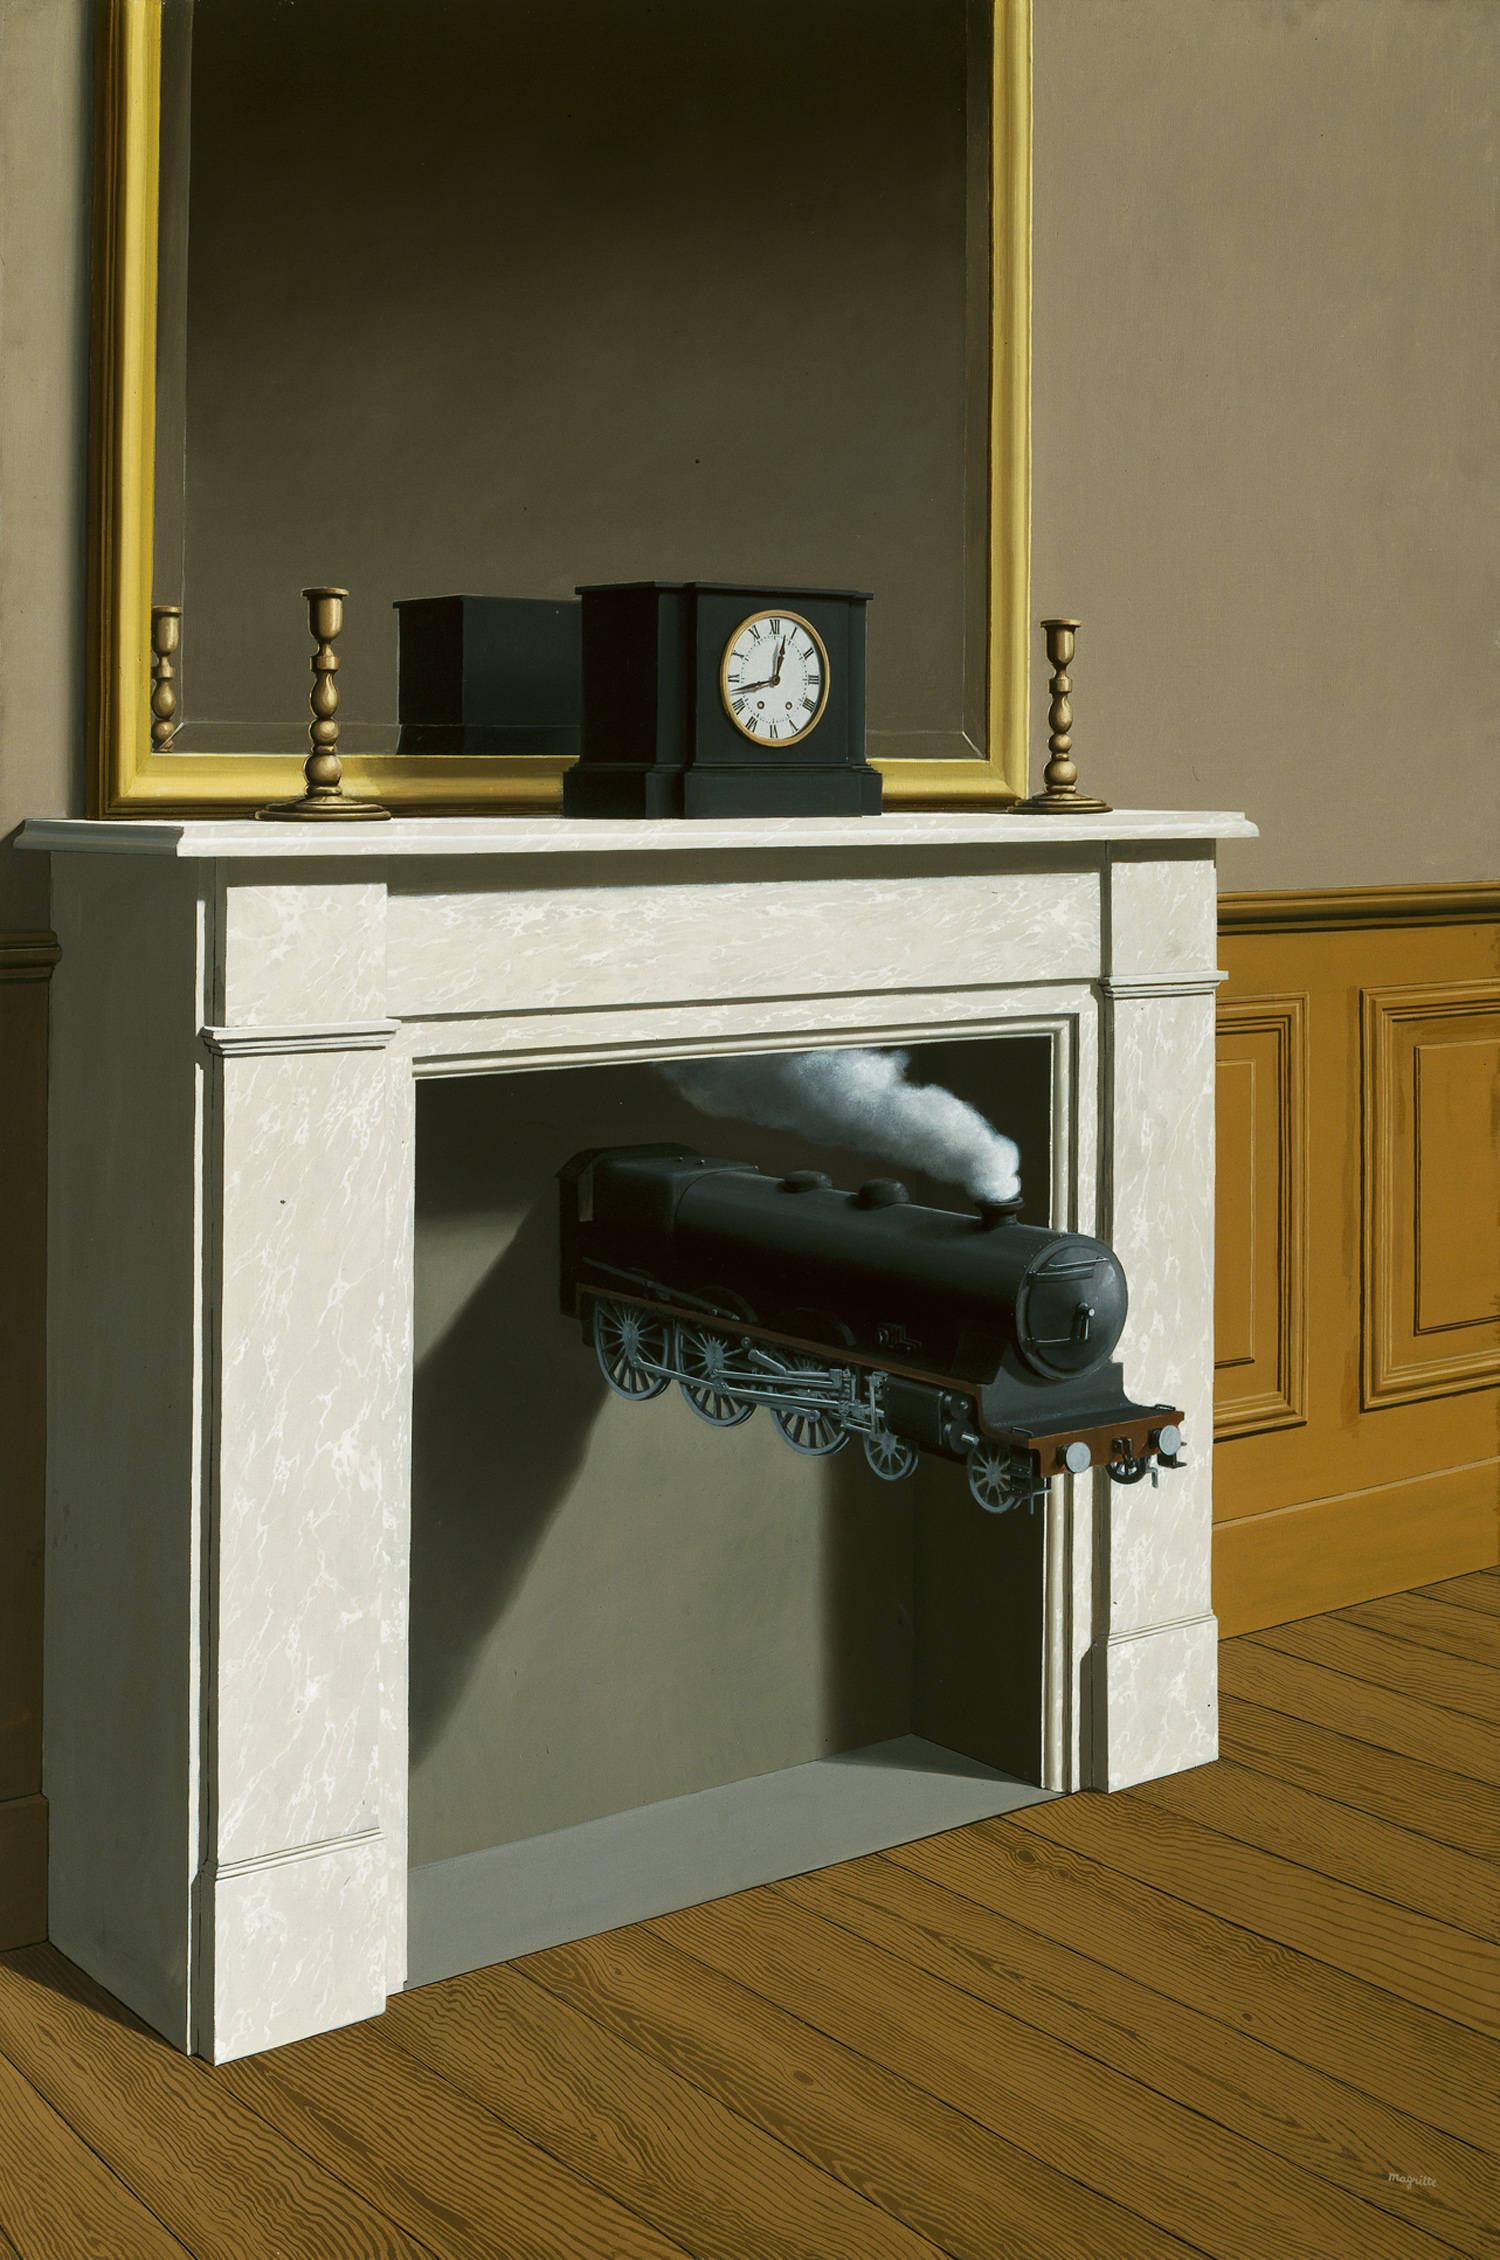 Rene Magritte - Time Transfixed 1938